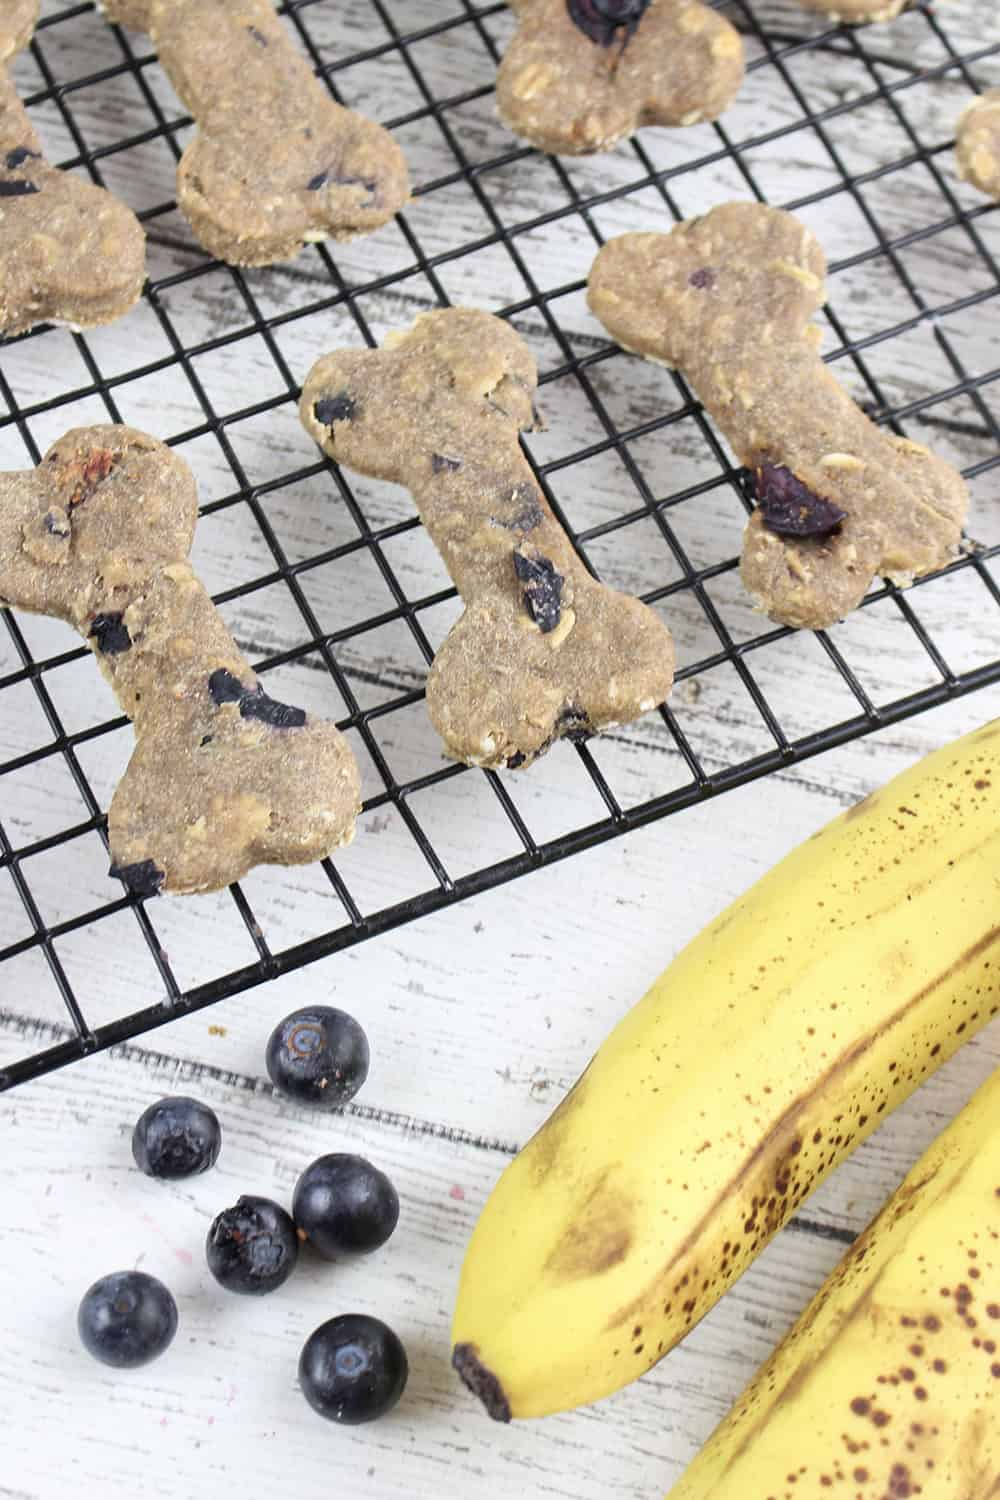 • These Peanut Butter Banana Dog Treats are super easy dog treats that you can make at home!